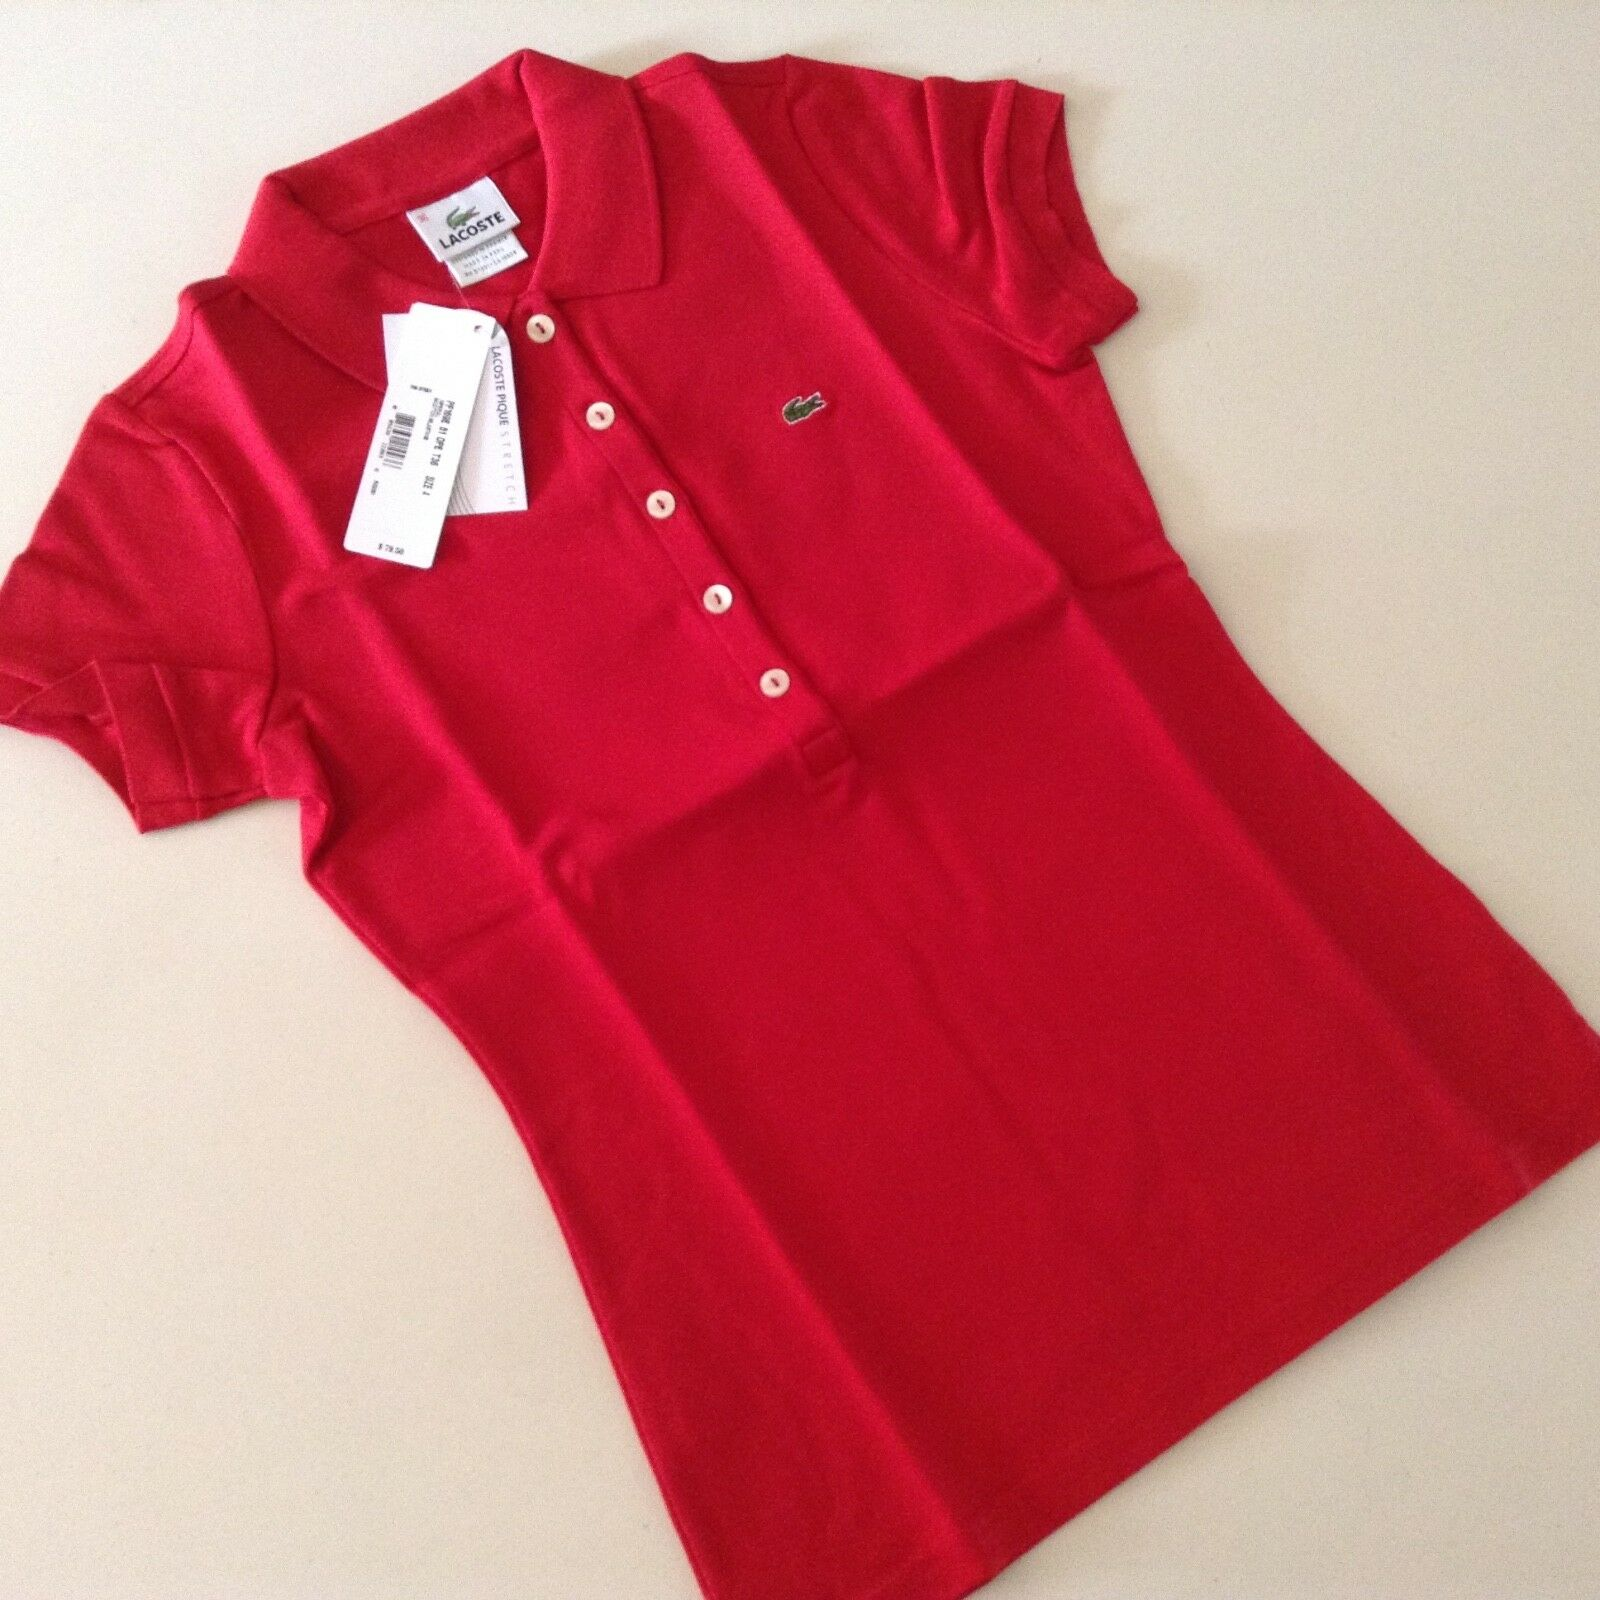 NWT Lacoste Pique Stretch Women's Polo red short sleeve